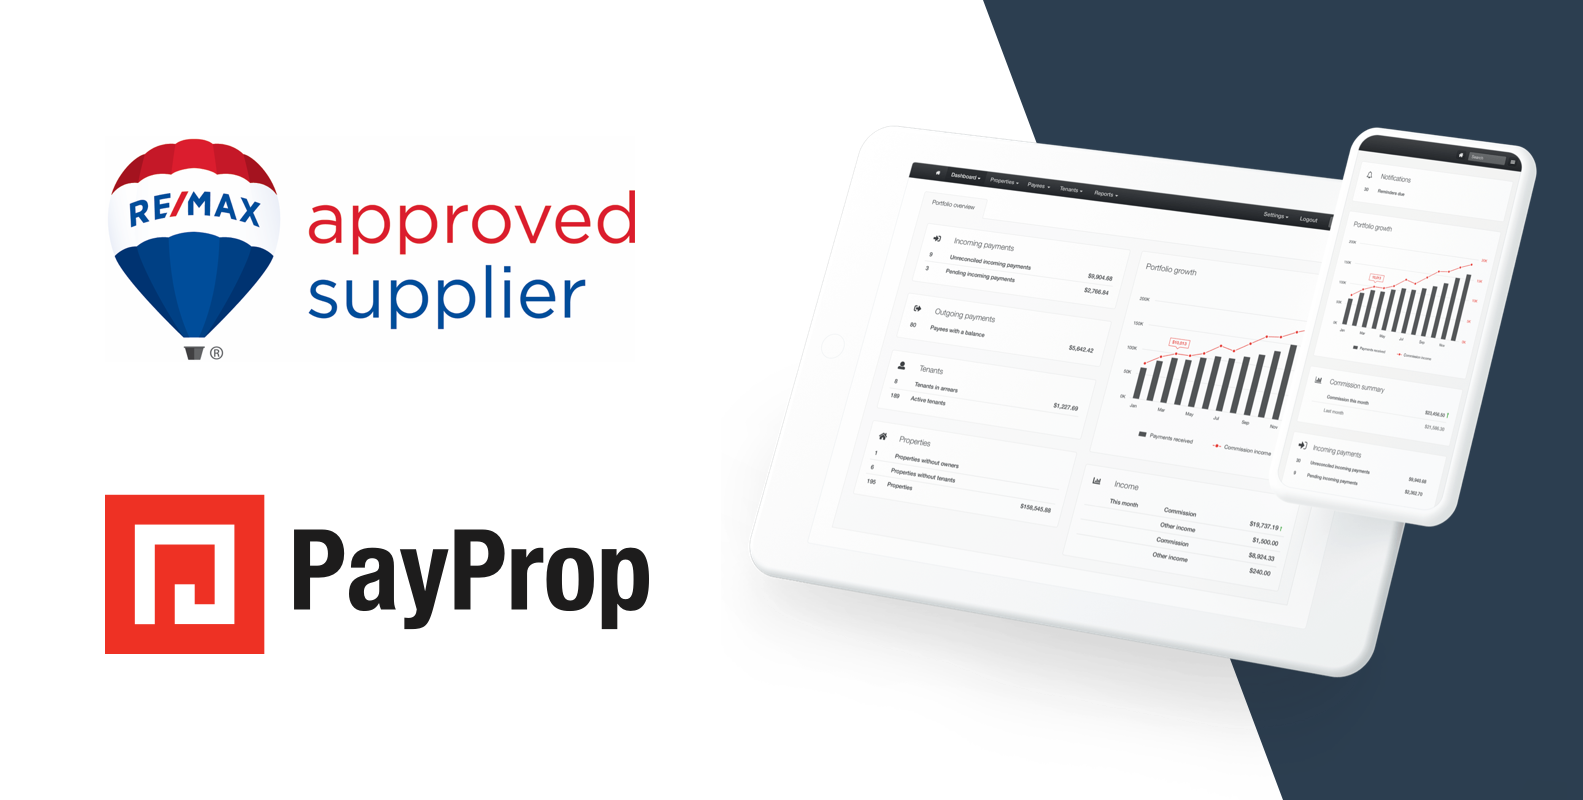 PayProp is now a RE/MAX Approved Supplier